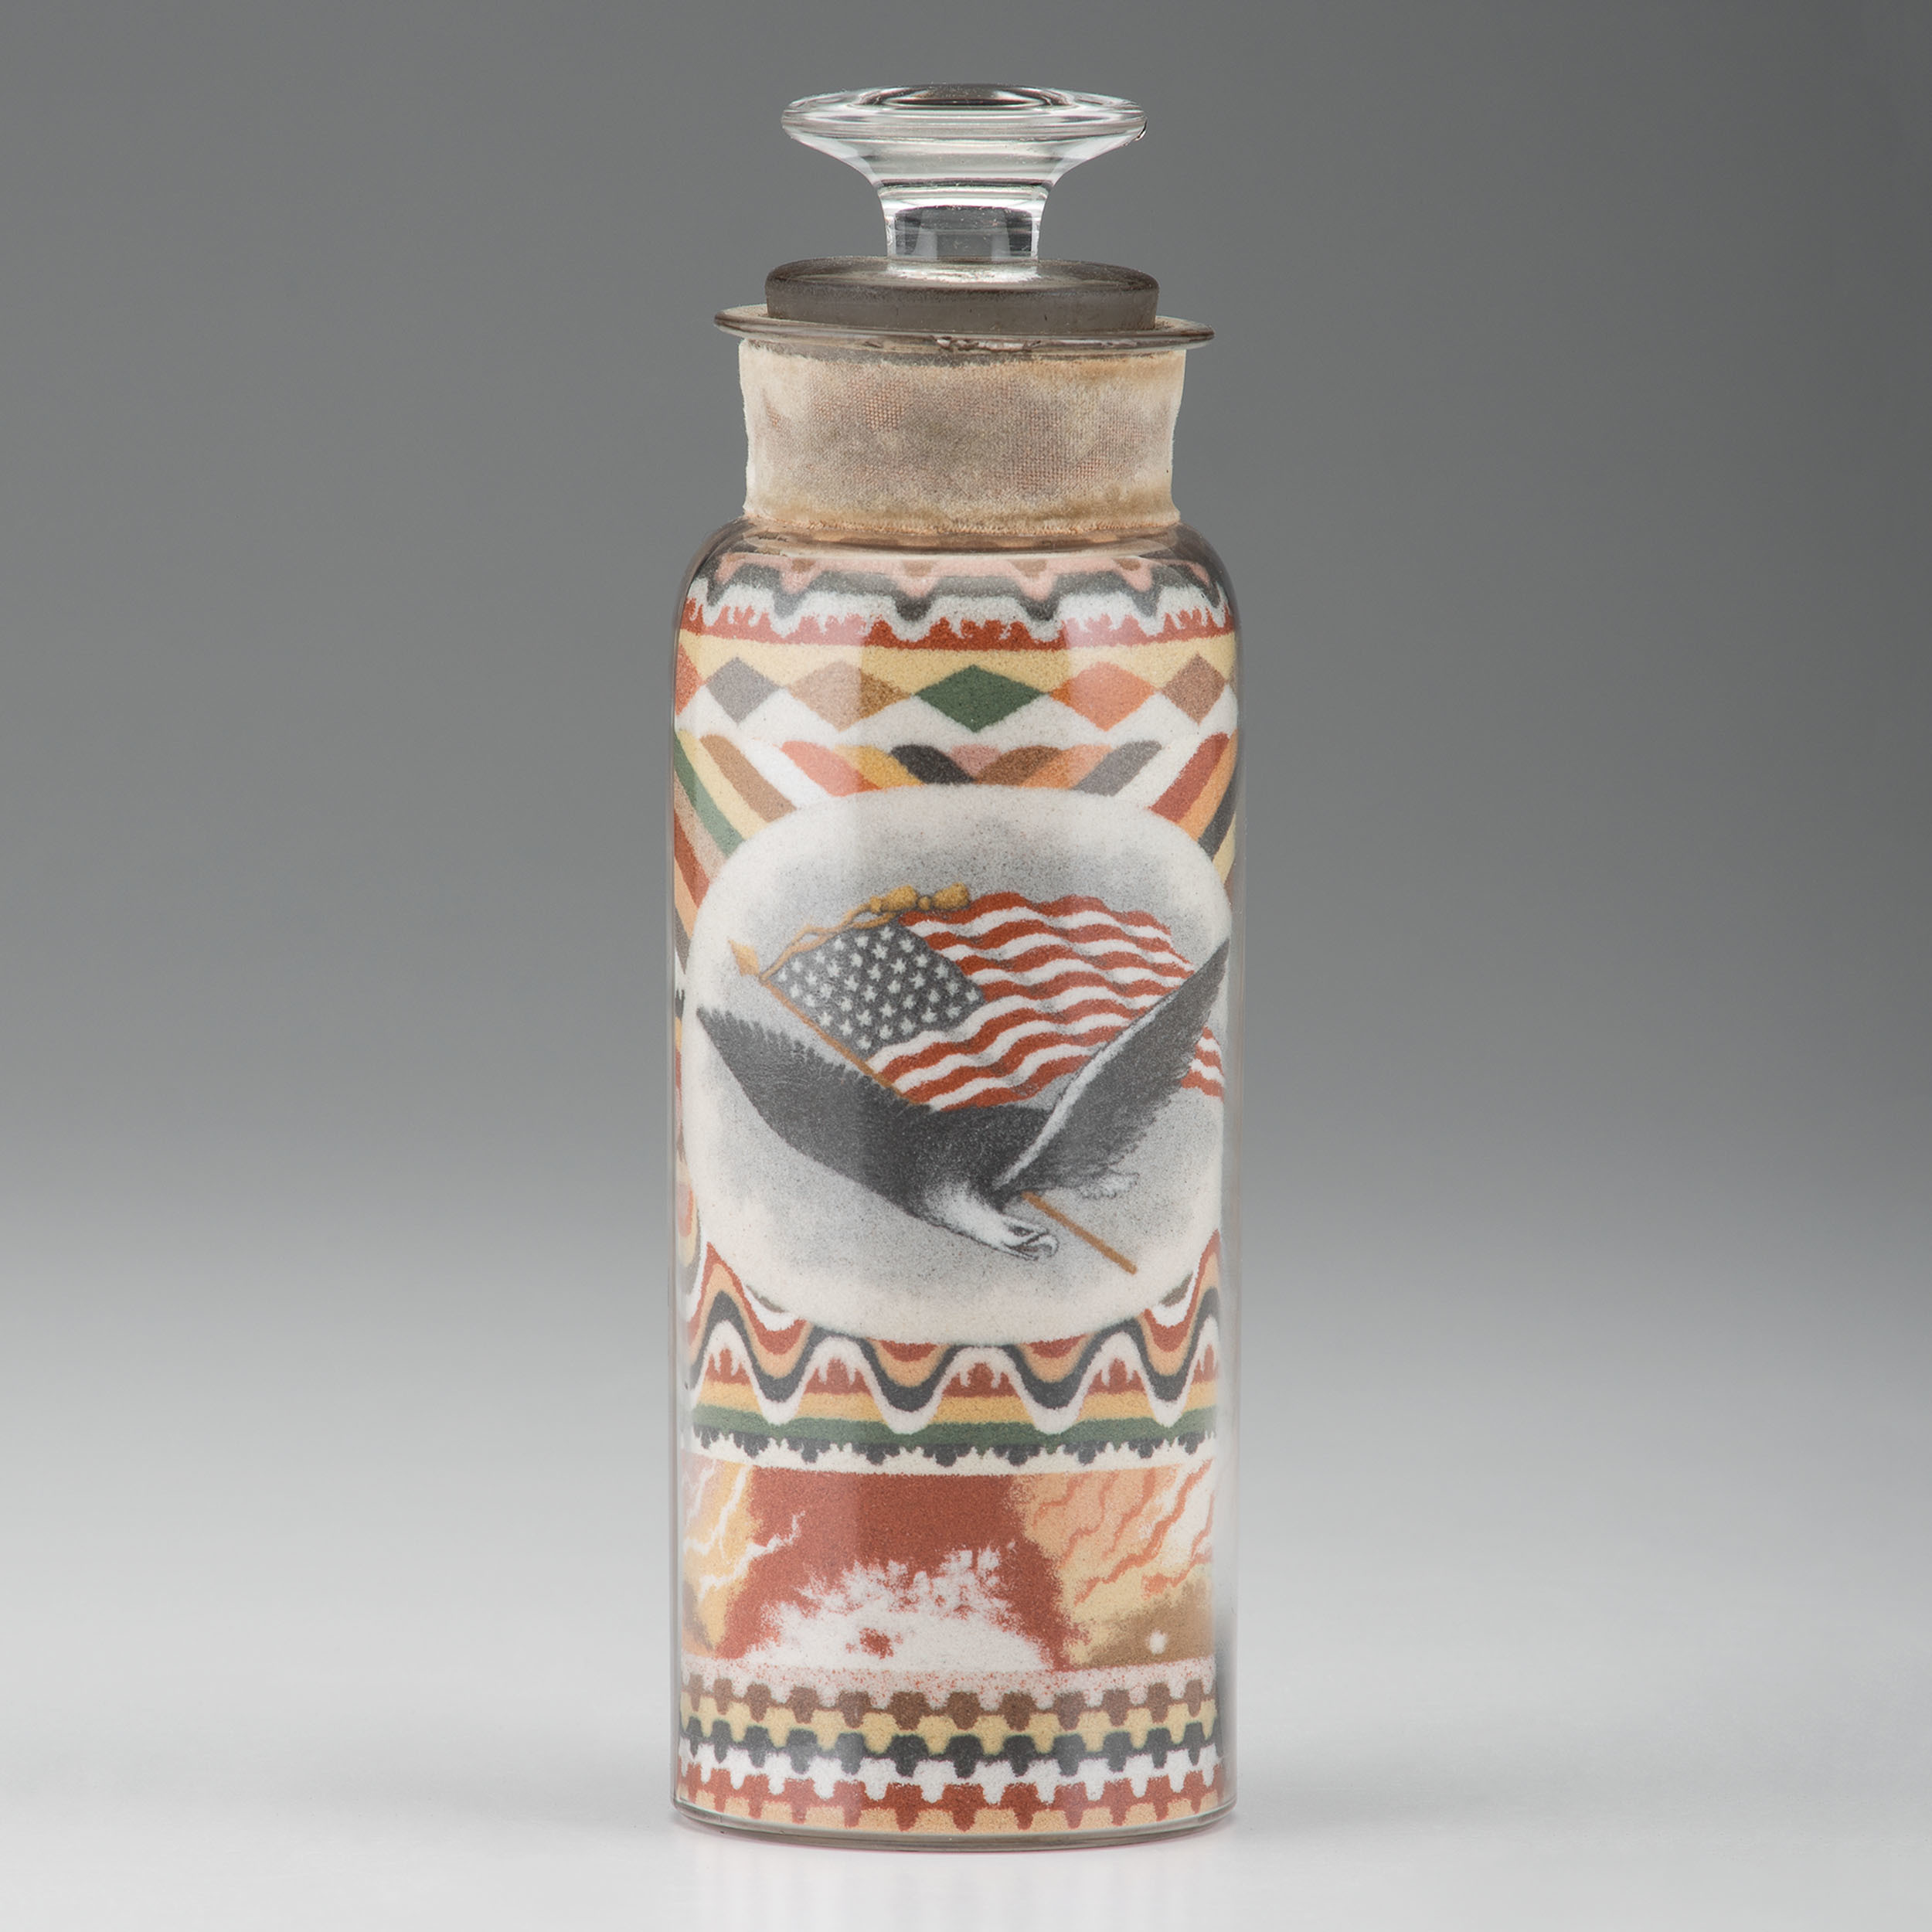 The ninth most popular story on The Hot Bid in 2019 featured a patriotic sand bottle created by Andrew Clemens.